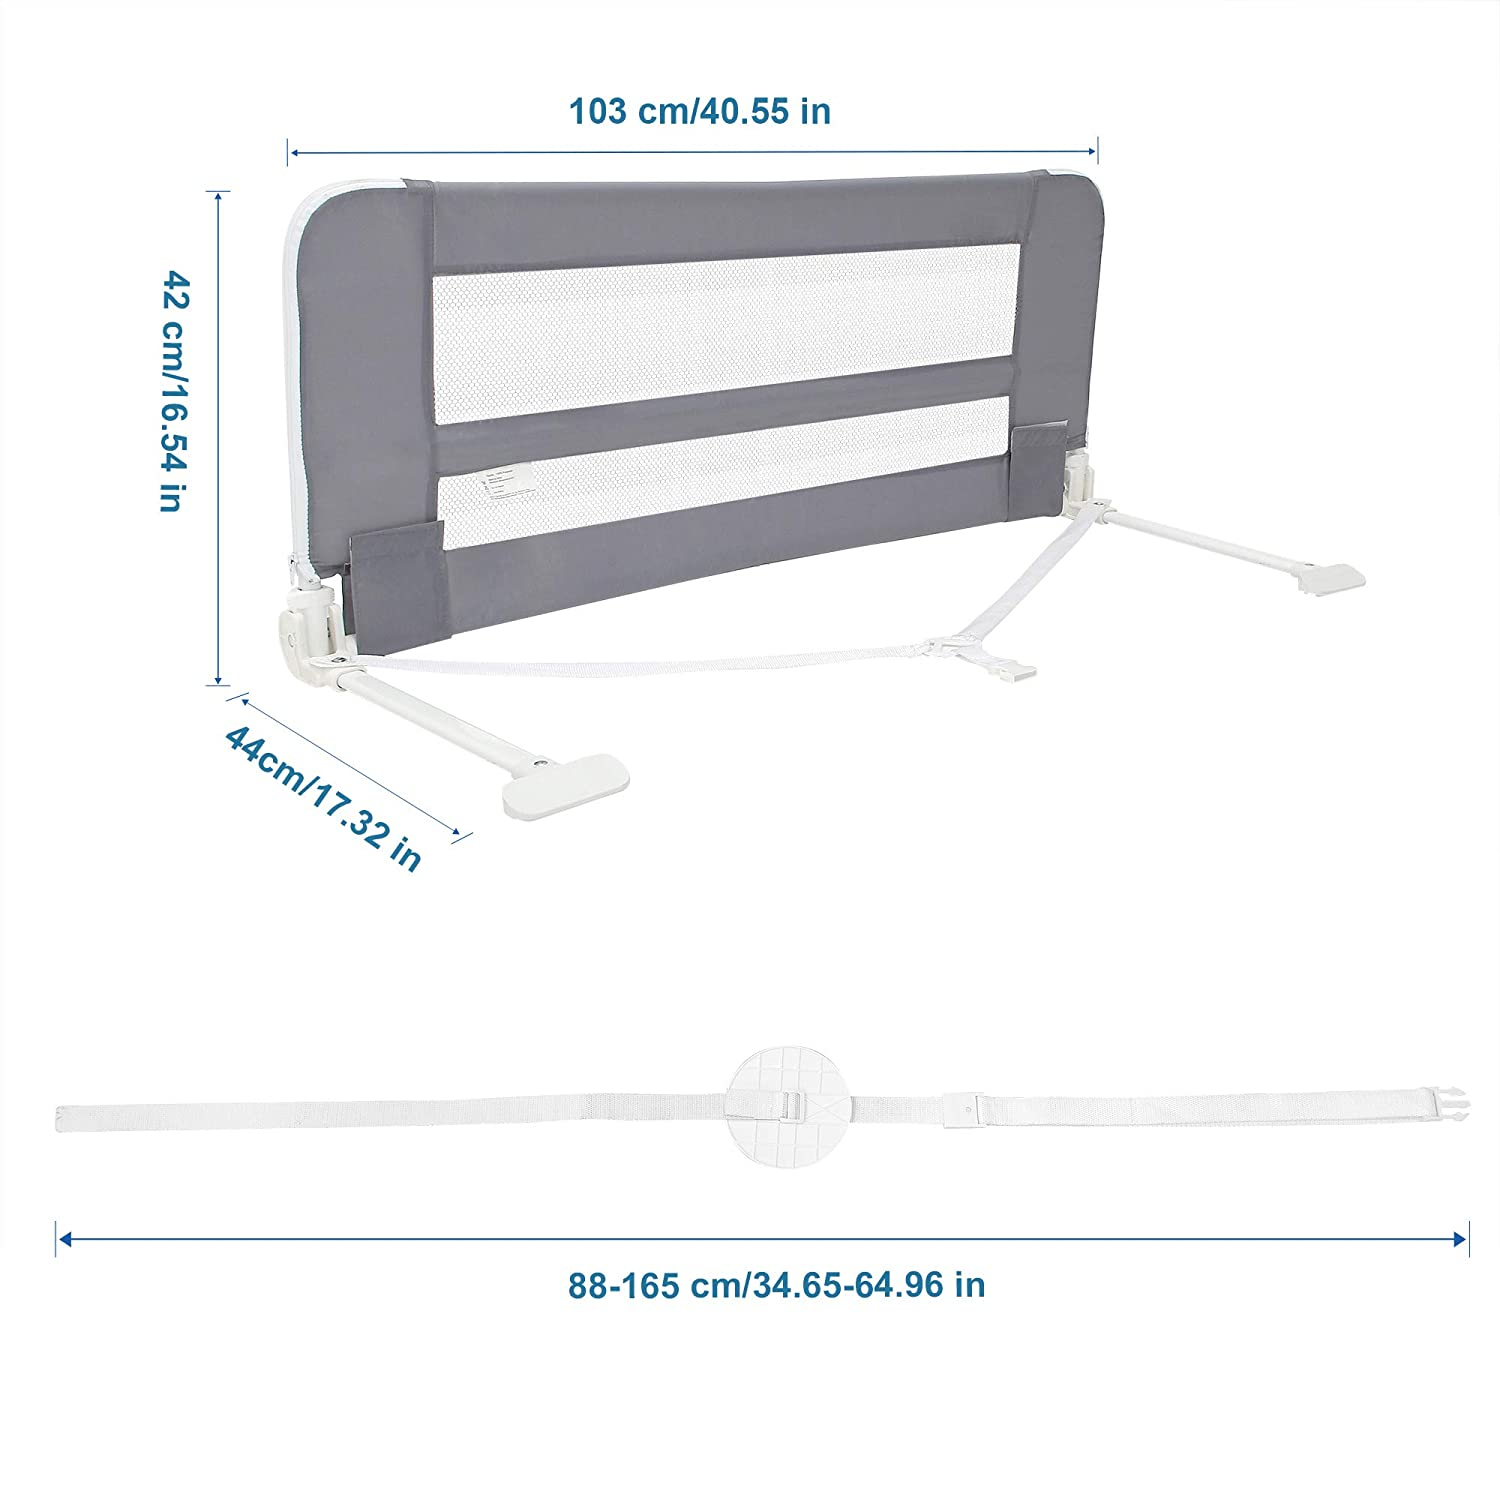 40 Folding Baby Bed Rail for Kids Swing Down Safety Bed Guard for Convertible Crib Full Size Queen /& King Mattress Twins Grey Sotech Bed Rails for Toddlers